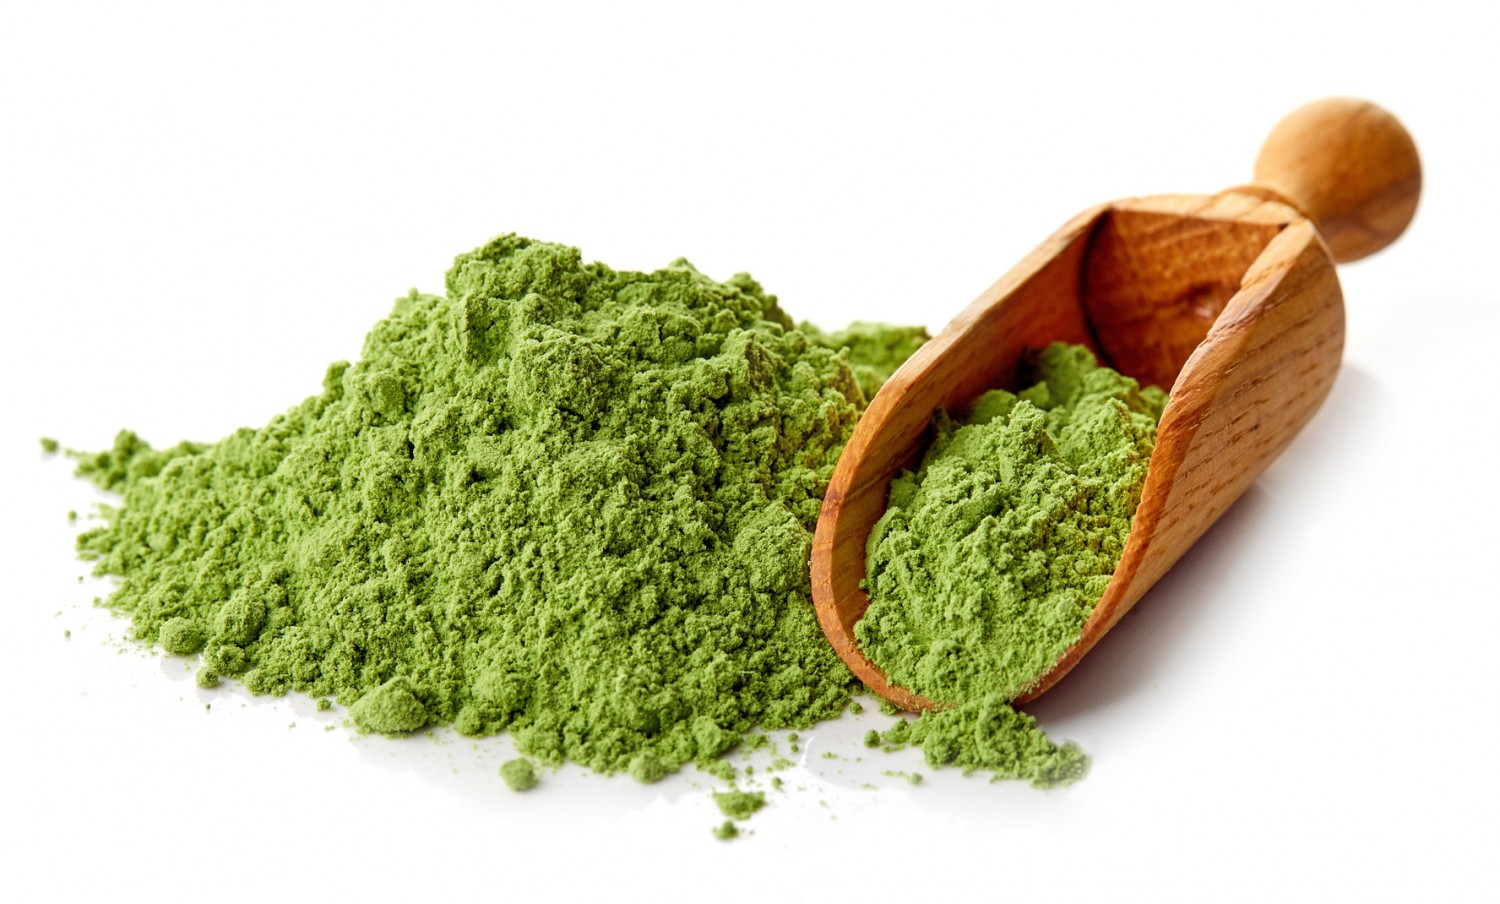 Superfood Green Powder Whole Foods